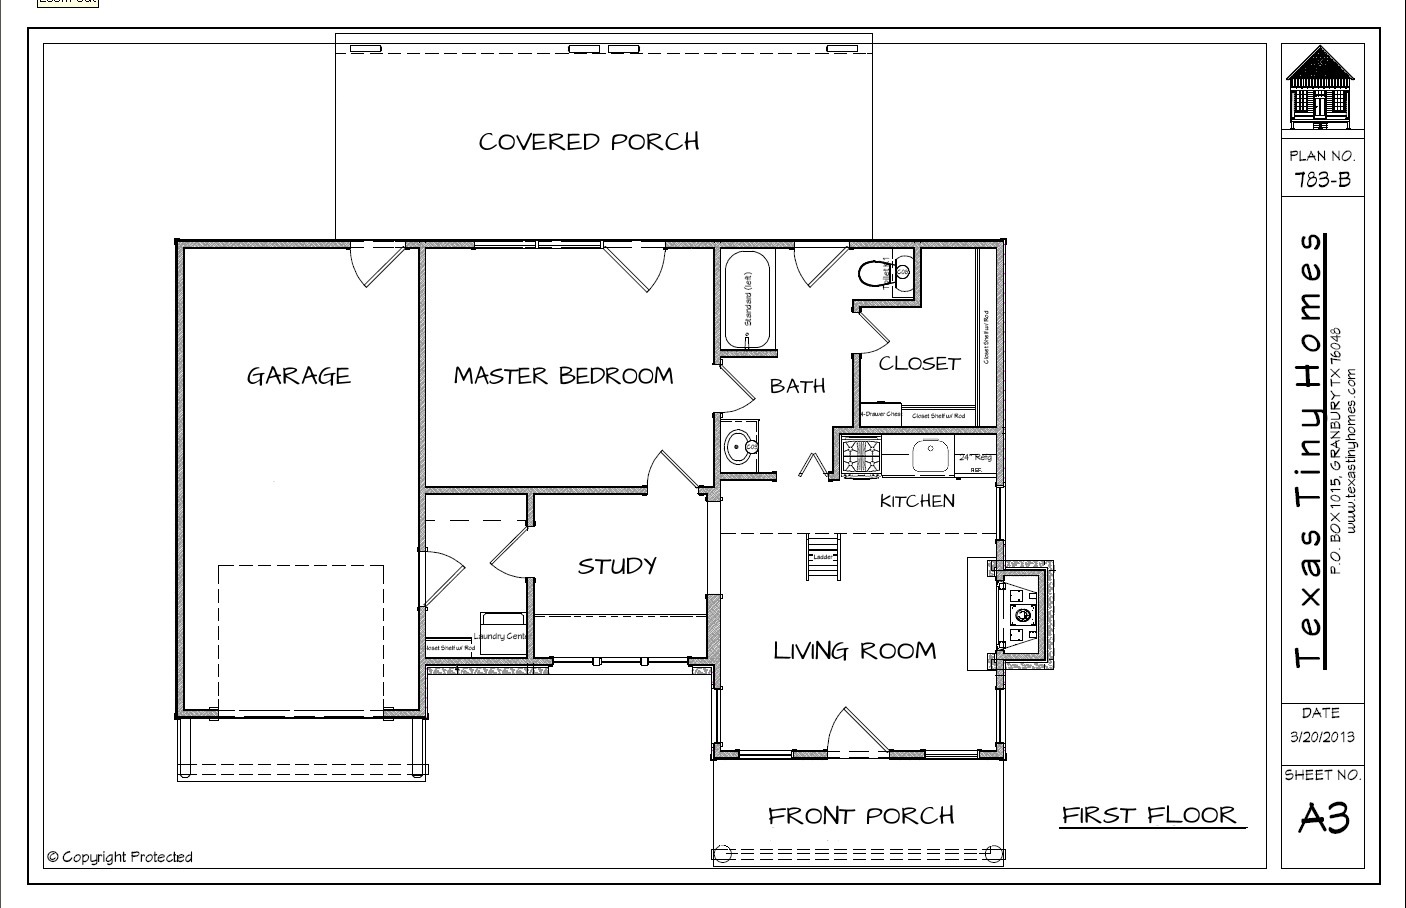 Awesome house plans for small homes 4 small home plan for Small house design layout